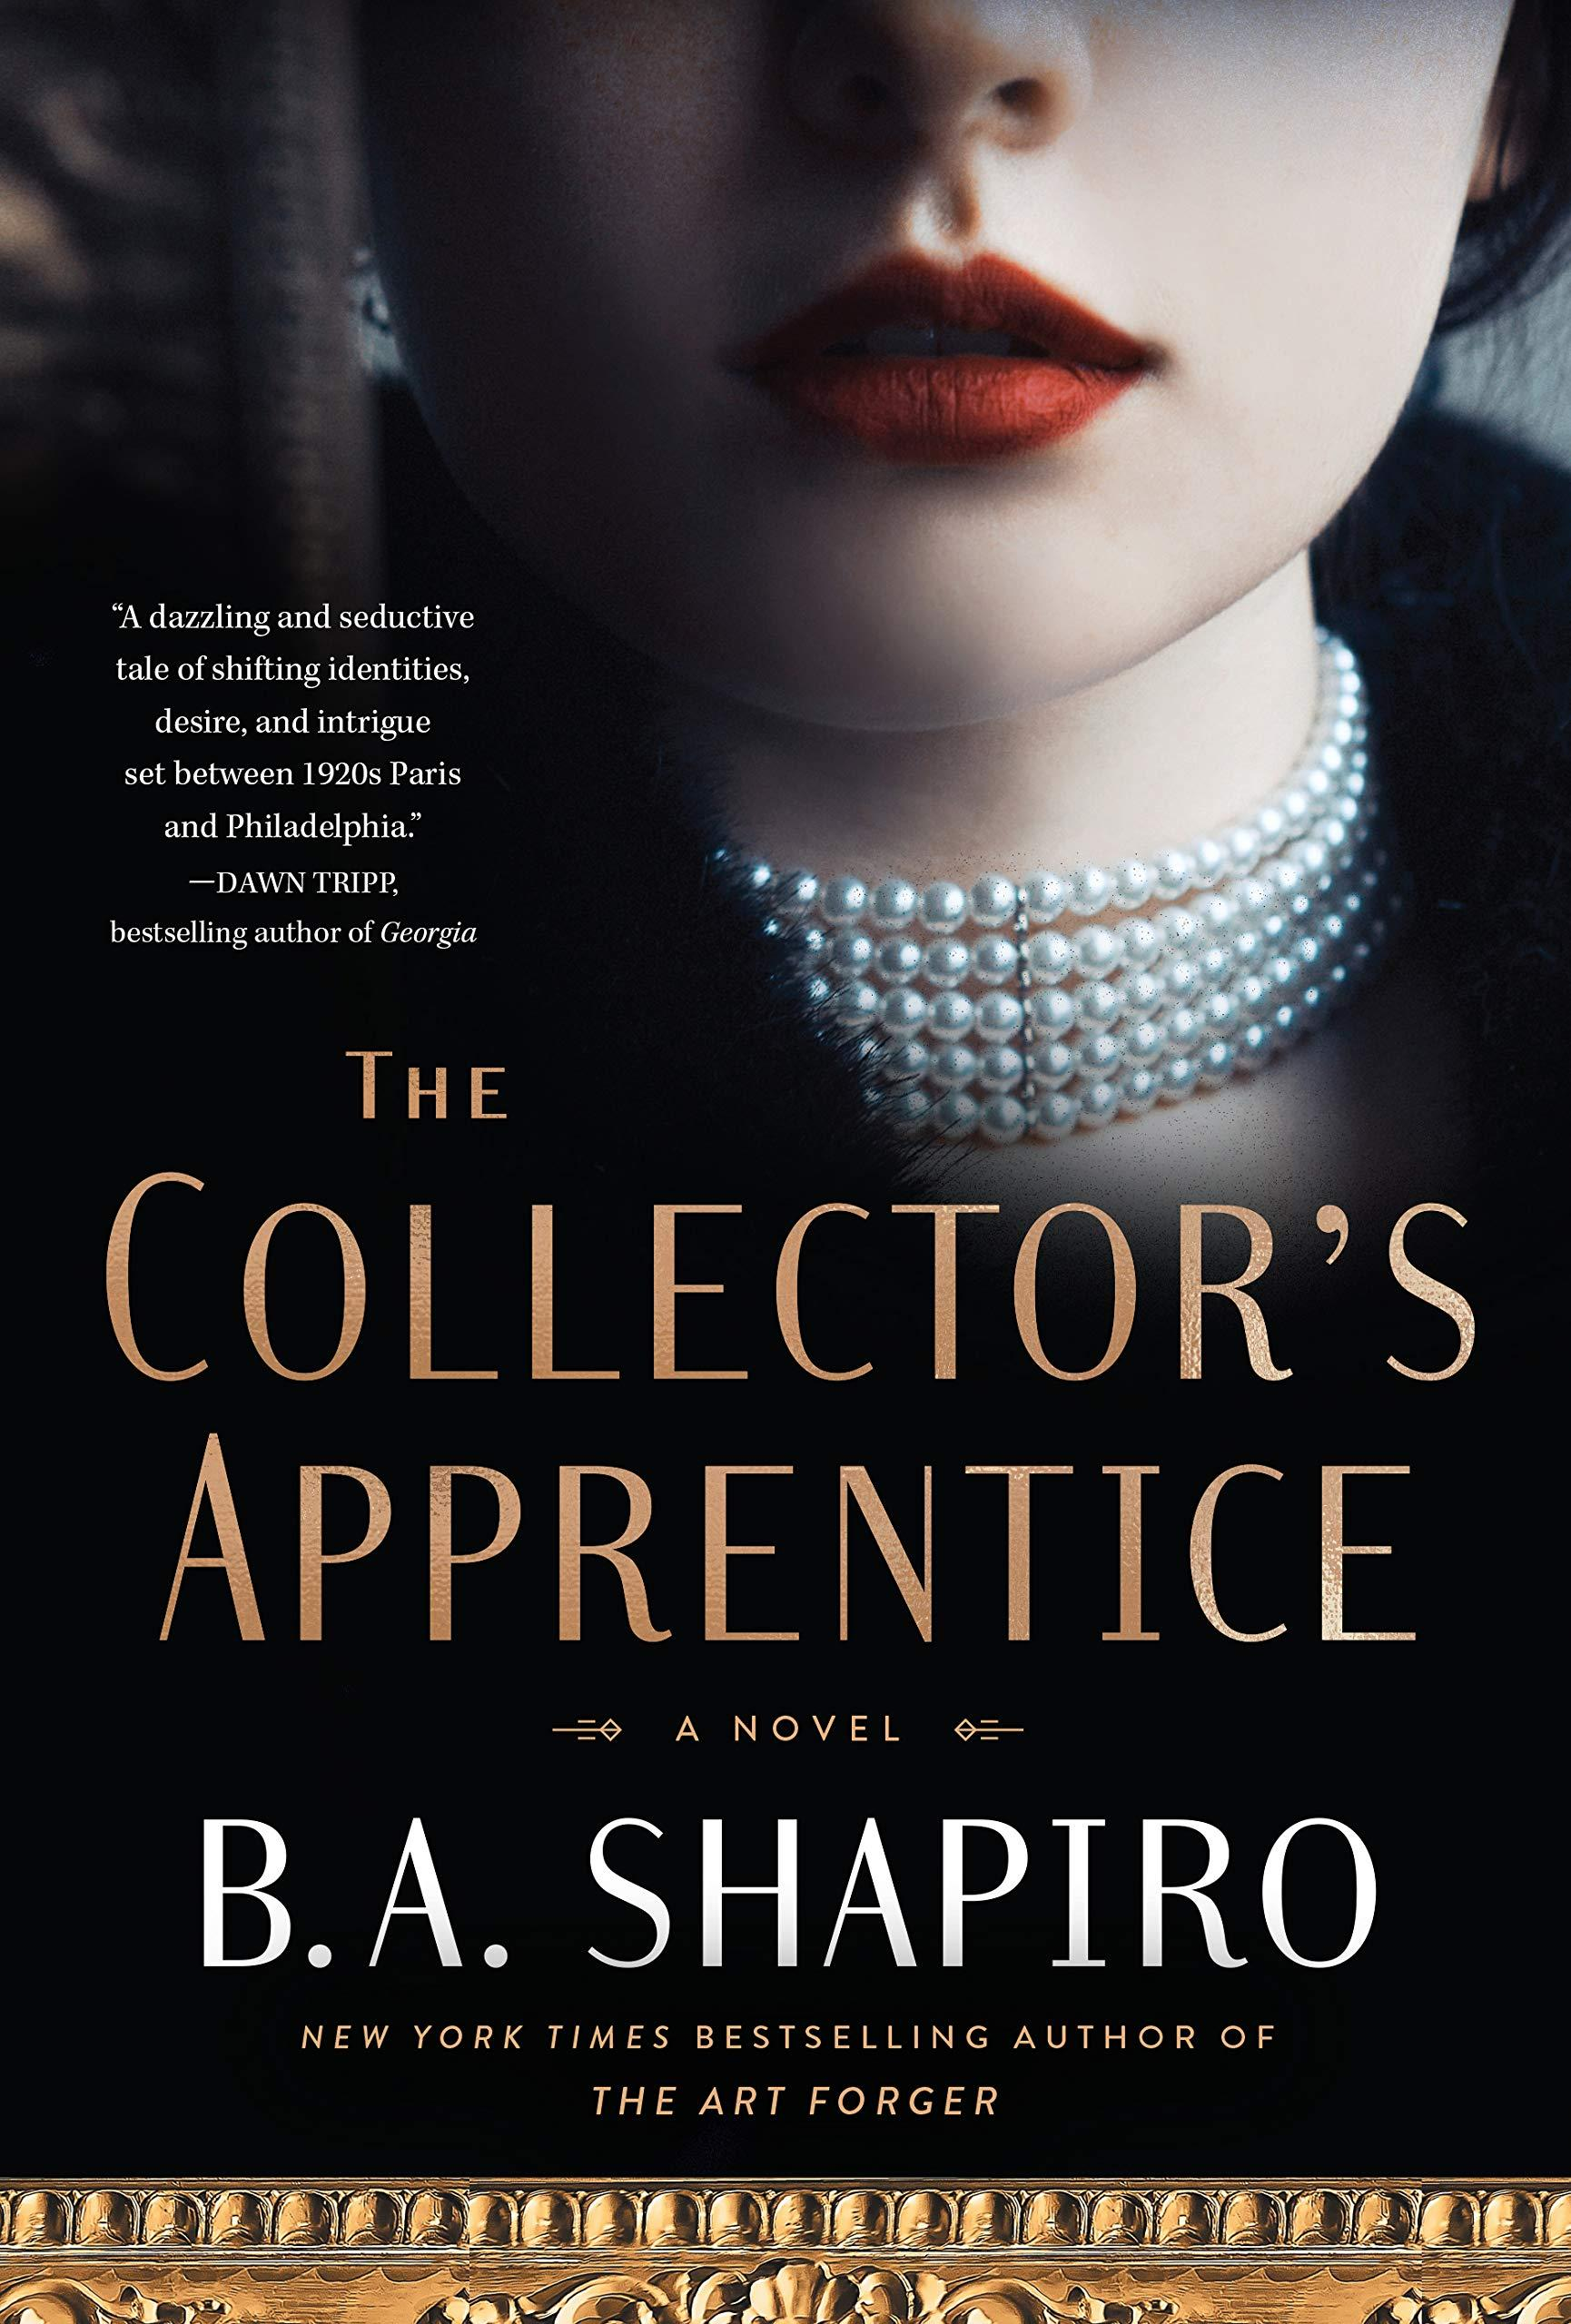 The Collector's Apprentice by B. A. Shapiro